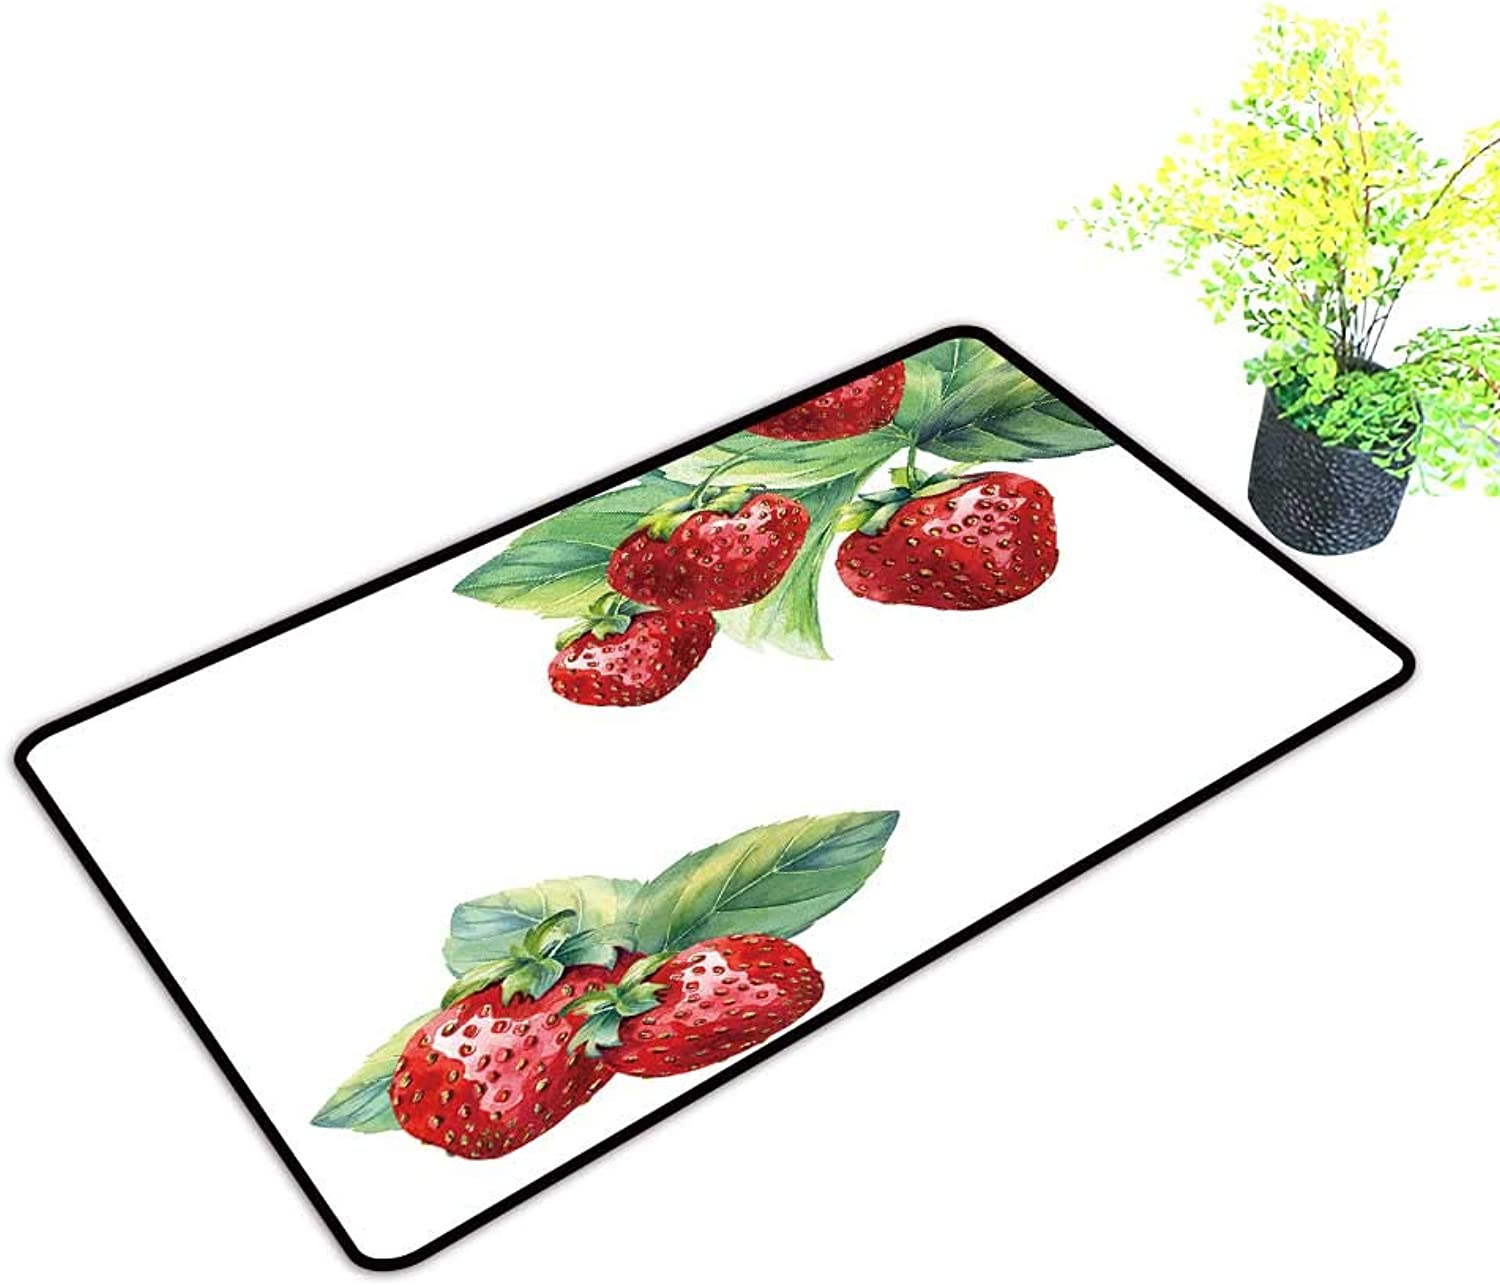 Gmnalahome Super Absorbs Mud Doormat Strawberry on White backgroun No Odor Durable Anti-Slip W39 x H19 INCH